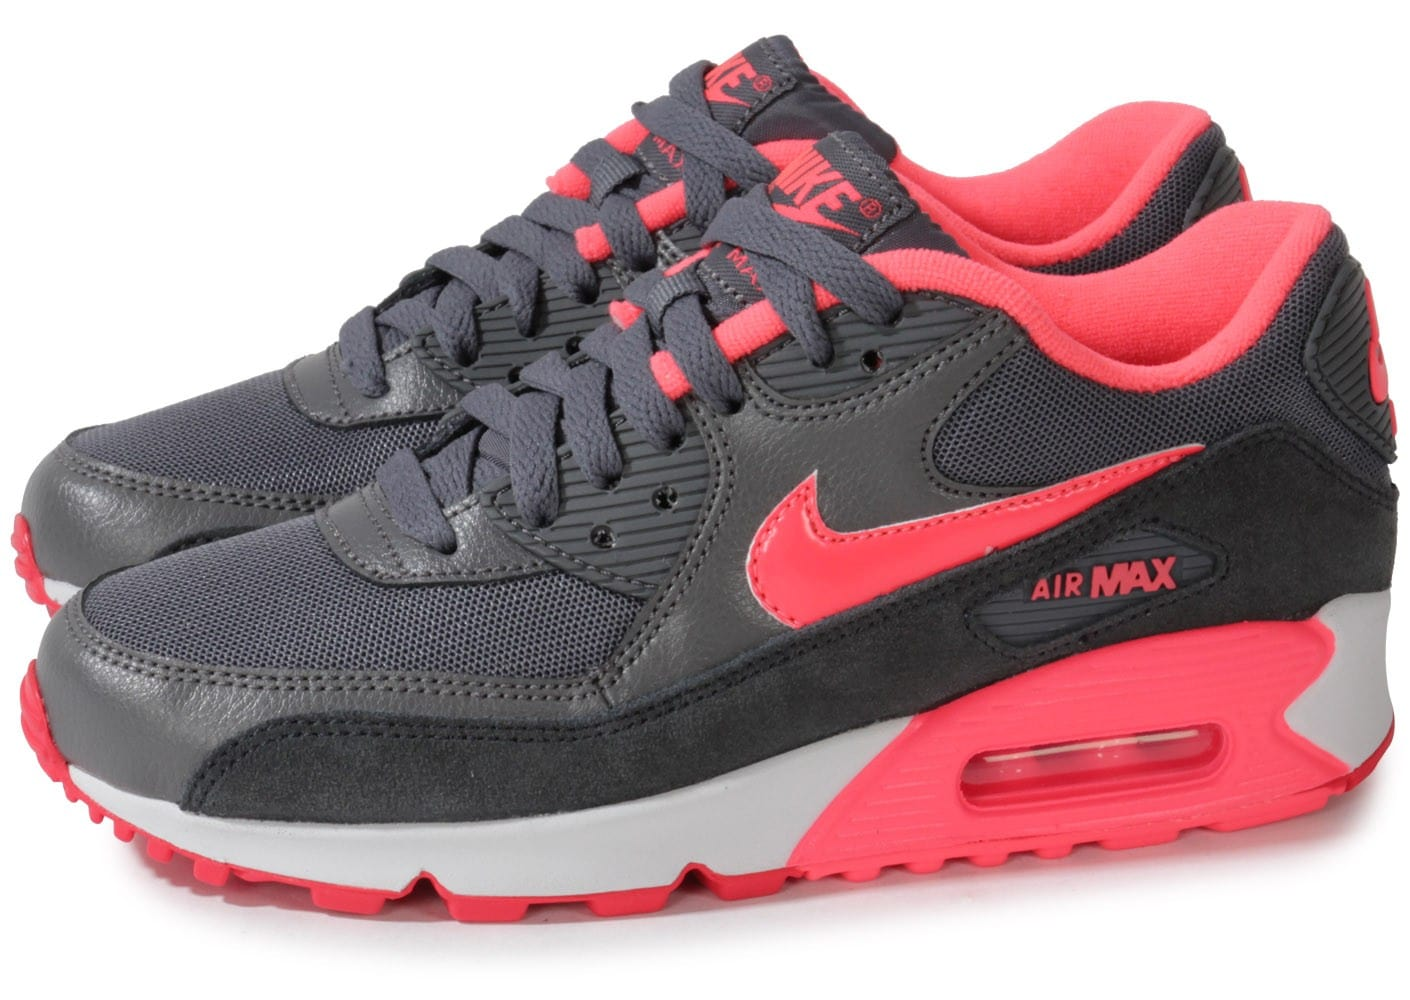 63a2feff3 sale nike air max gris rose 0a072 fdd25